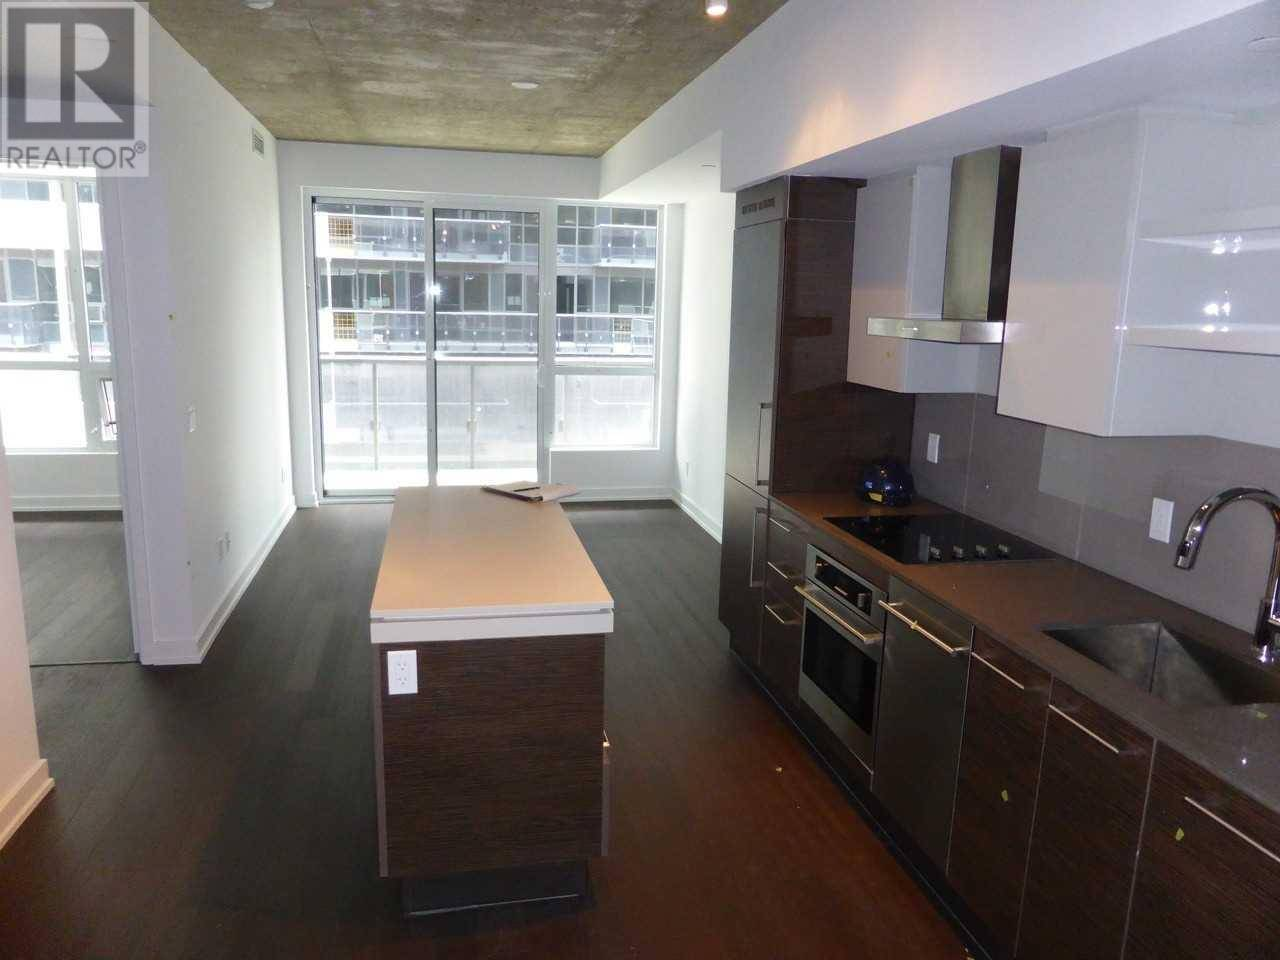 Apartment for rent at 1030 King St West Unit 748 Toronto Ontario - MLS: C4611166